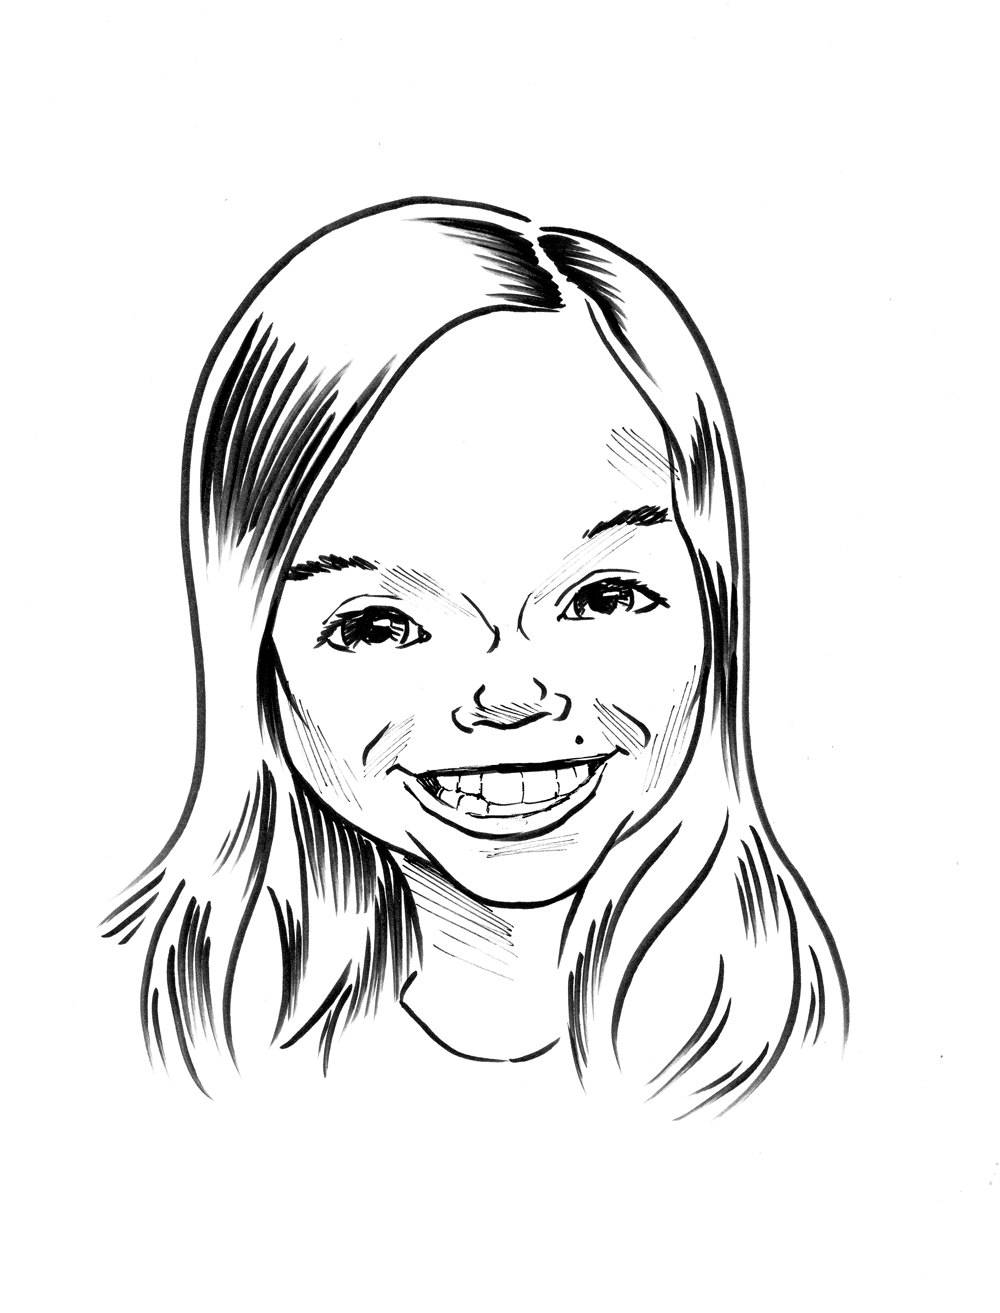 Drawn caricature Black  Subscription Caricature —